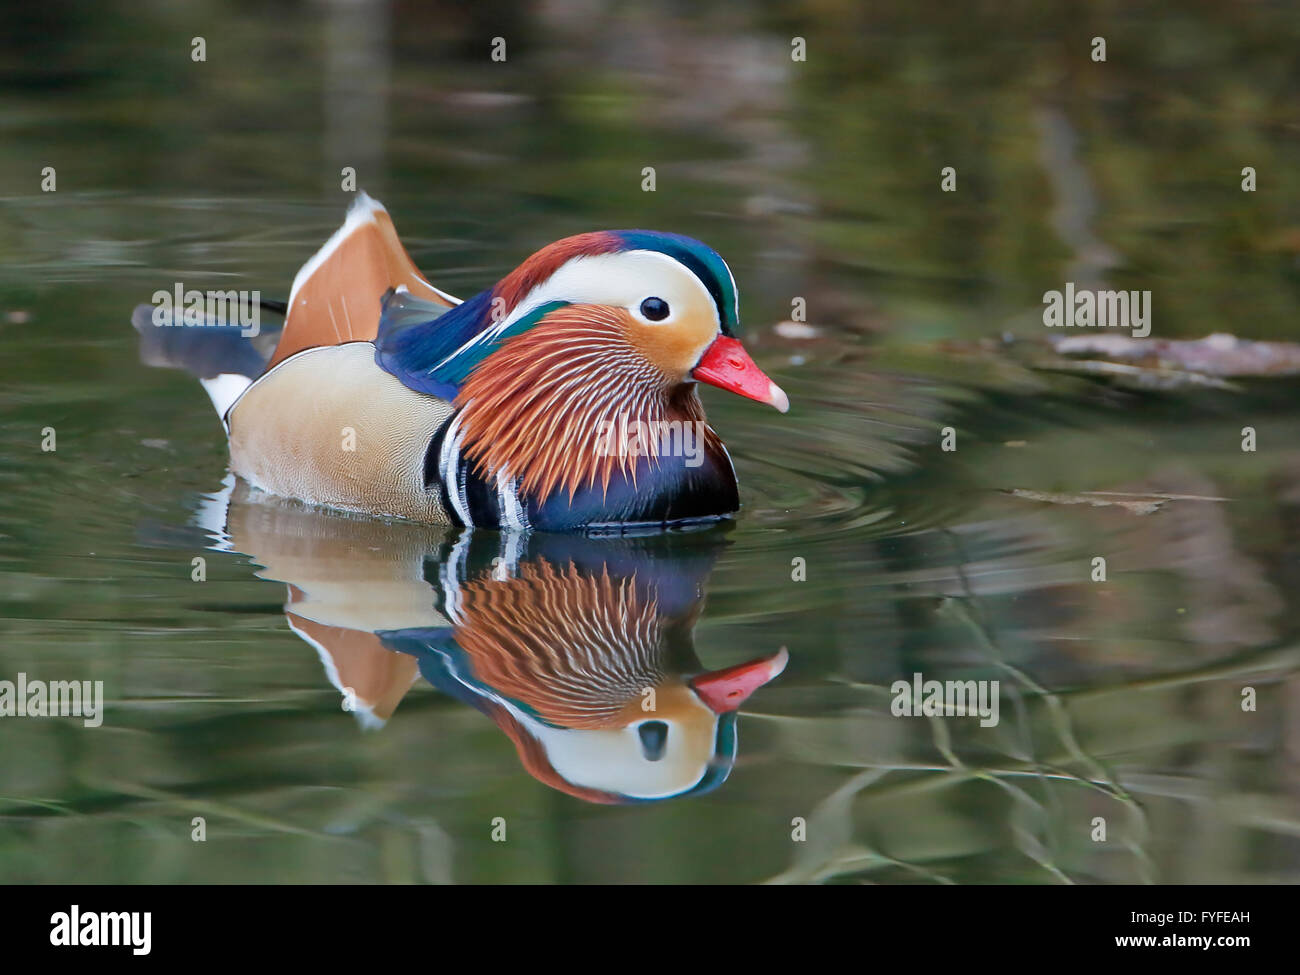 Mandarin duck (Aix galericulata) male swimming in water with reflection Stock Photo